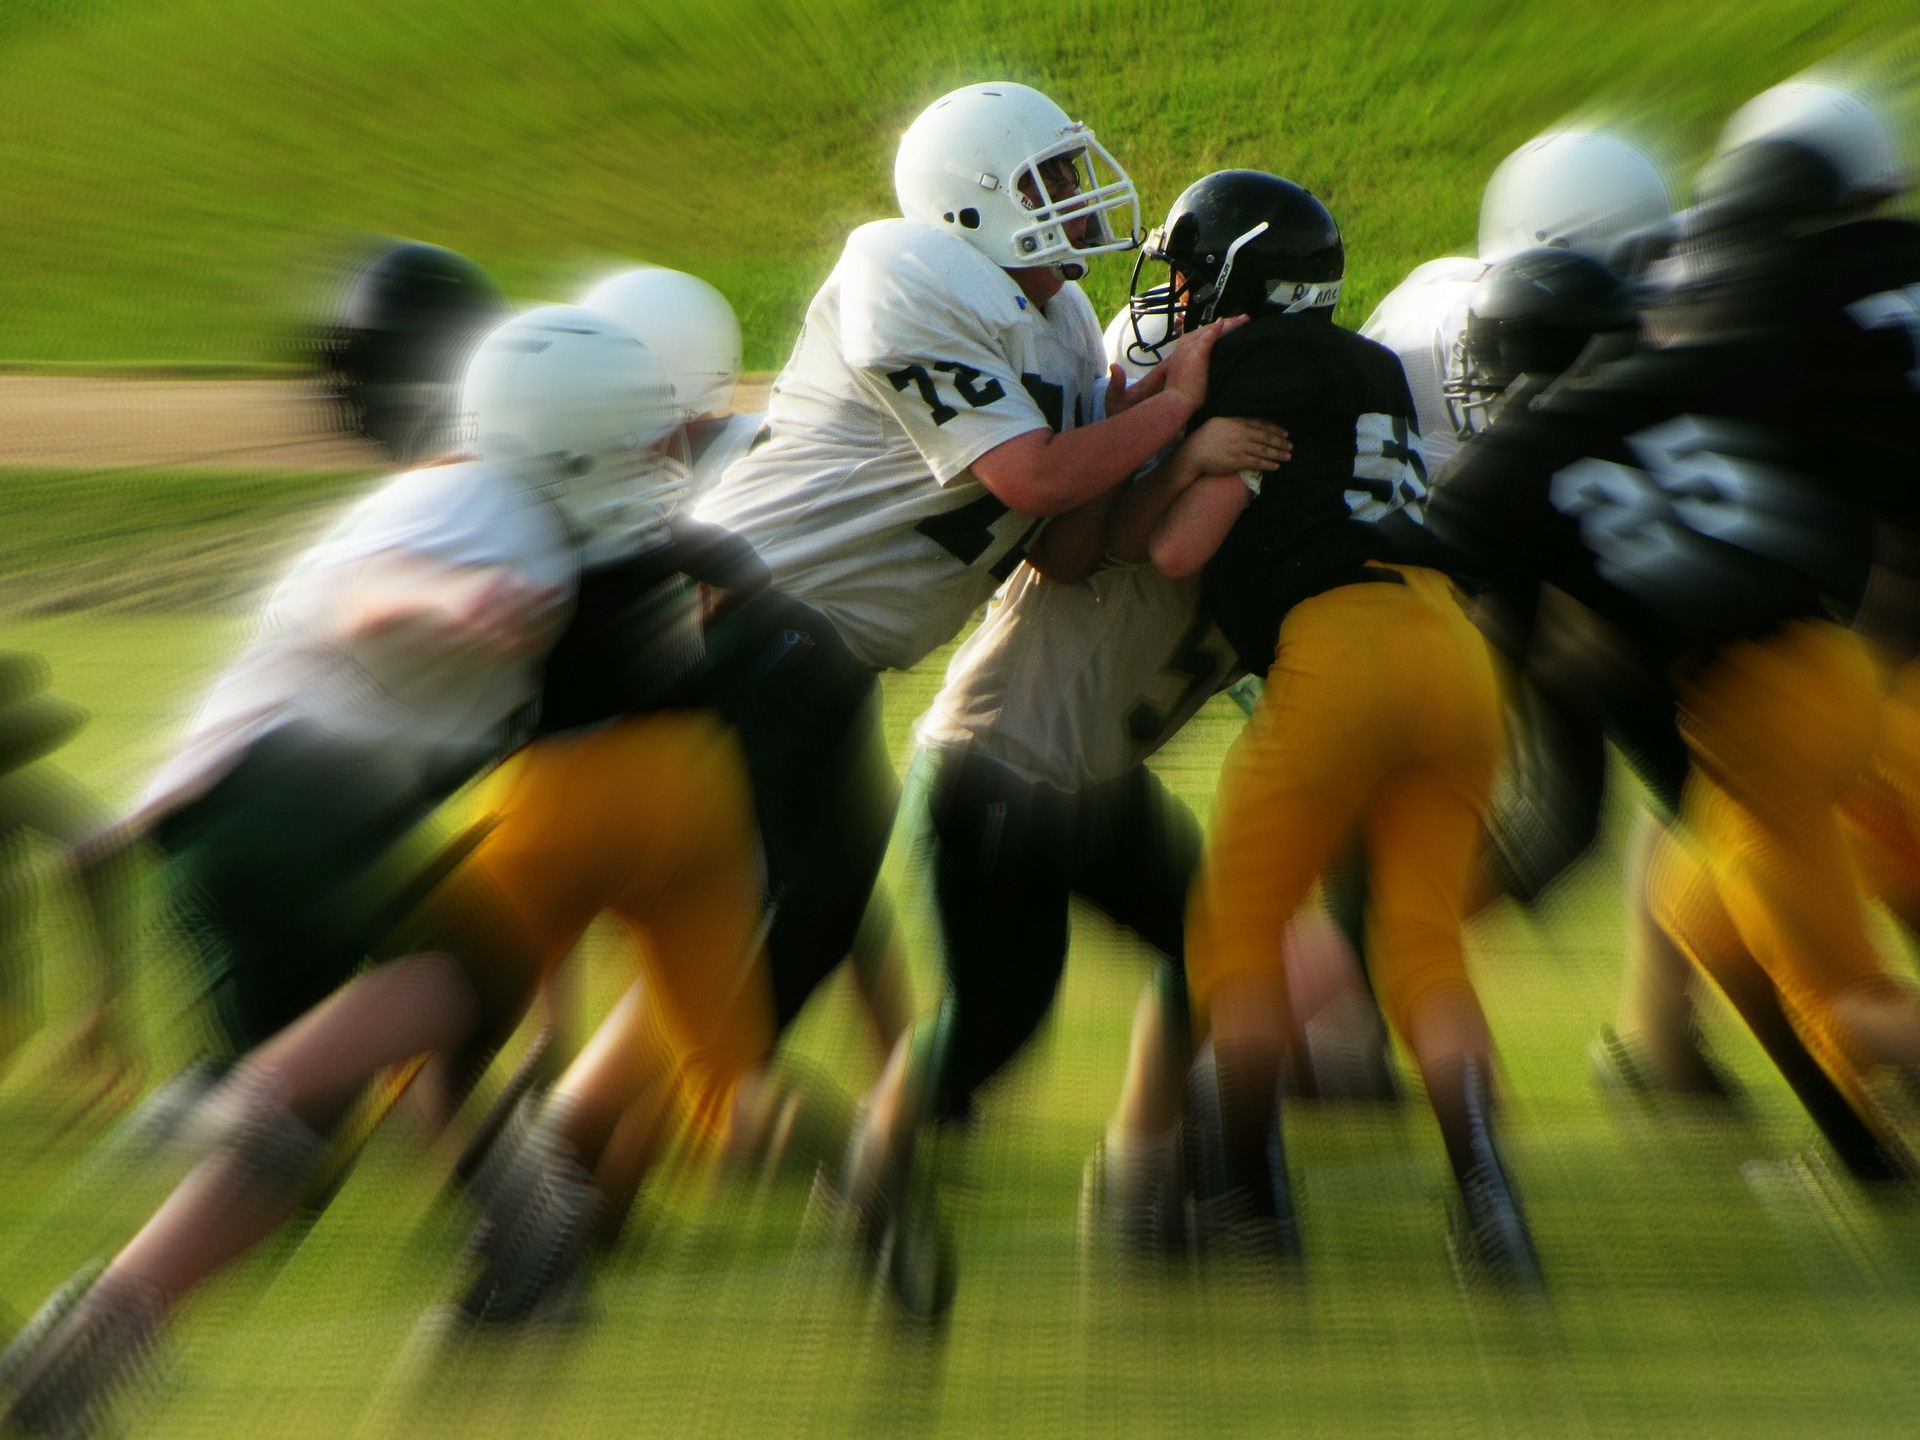 Study: Many Childhood Concussions Go Untreated